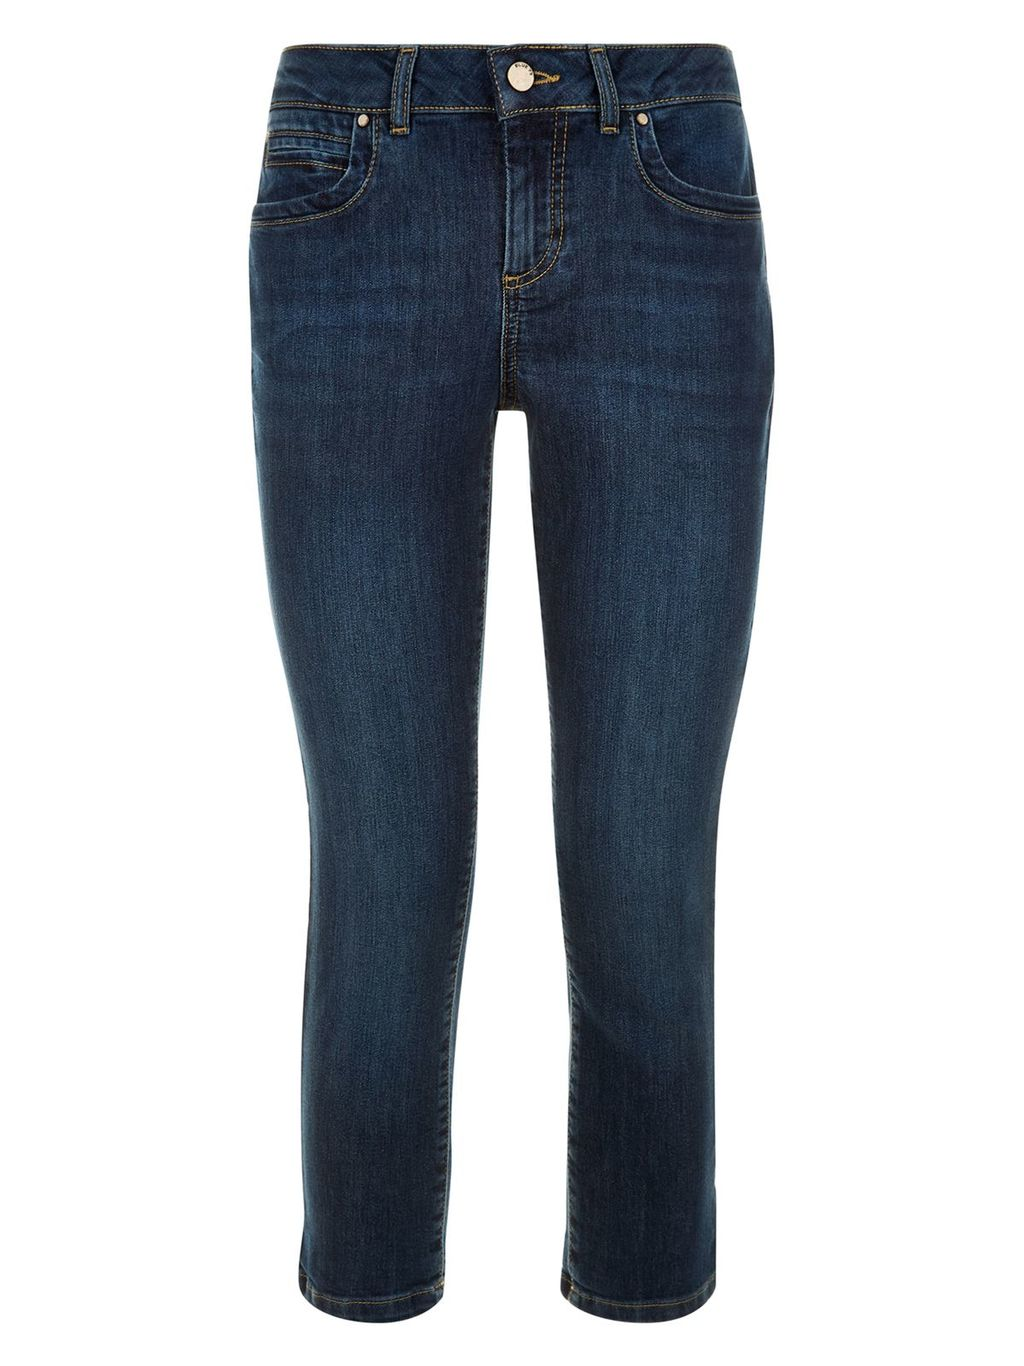 Isadora Capri, Denim - pattern: plain; style: capri; waist: mid/regular rise; predominant colour: denim; occasions: casual, creative work; length: calf length; fibres: cotton - stretch; texture group: denim; fit: skinny/tight leg; pattern type: fabric; season: s/s 2016; wardrobe: highlight